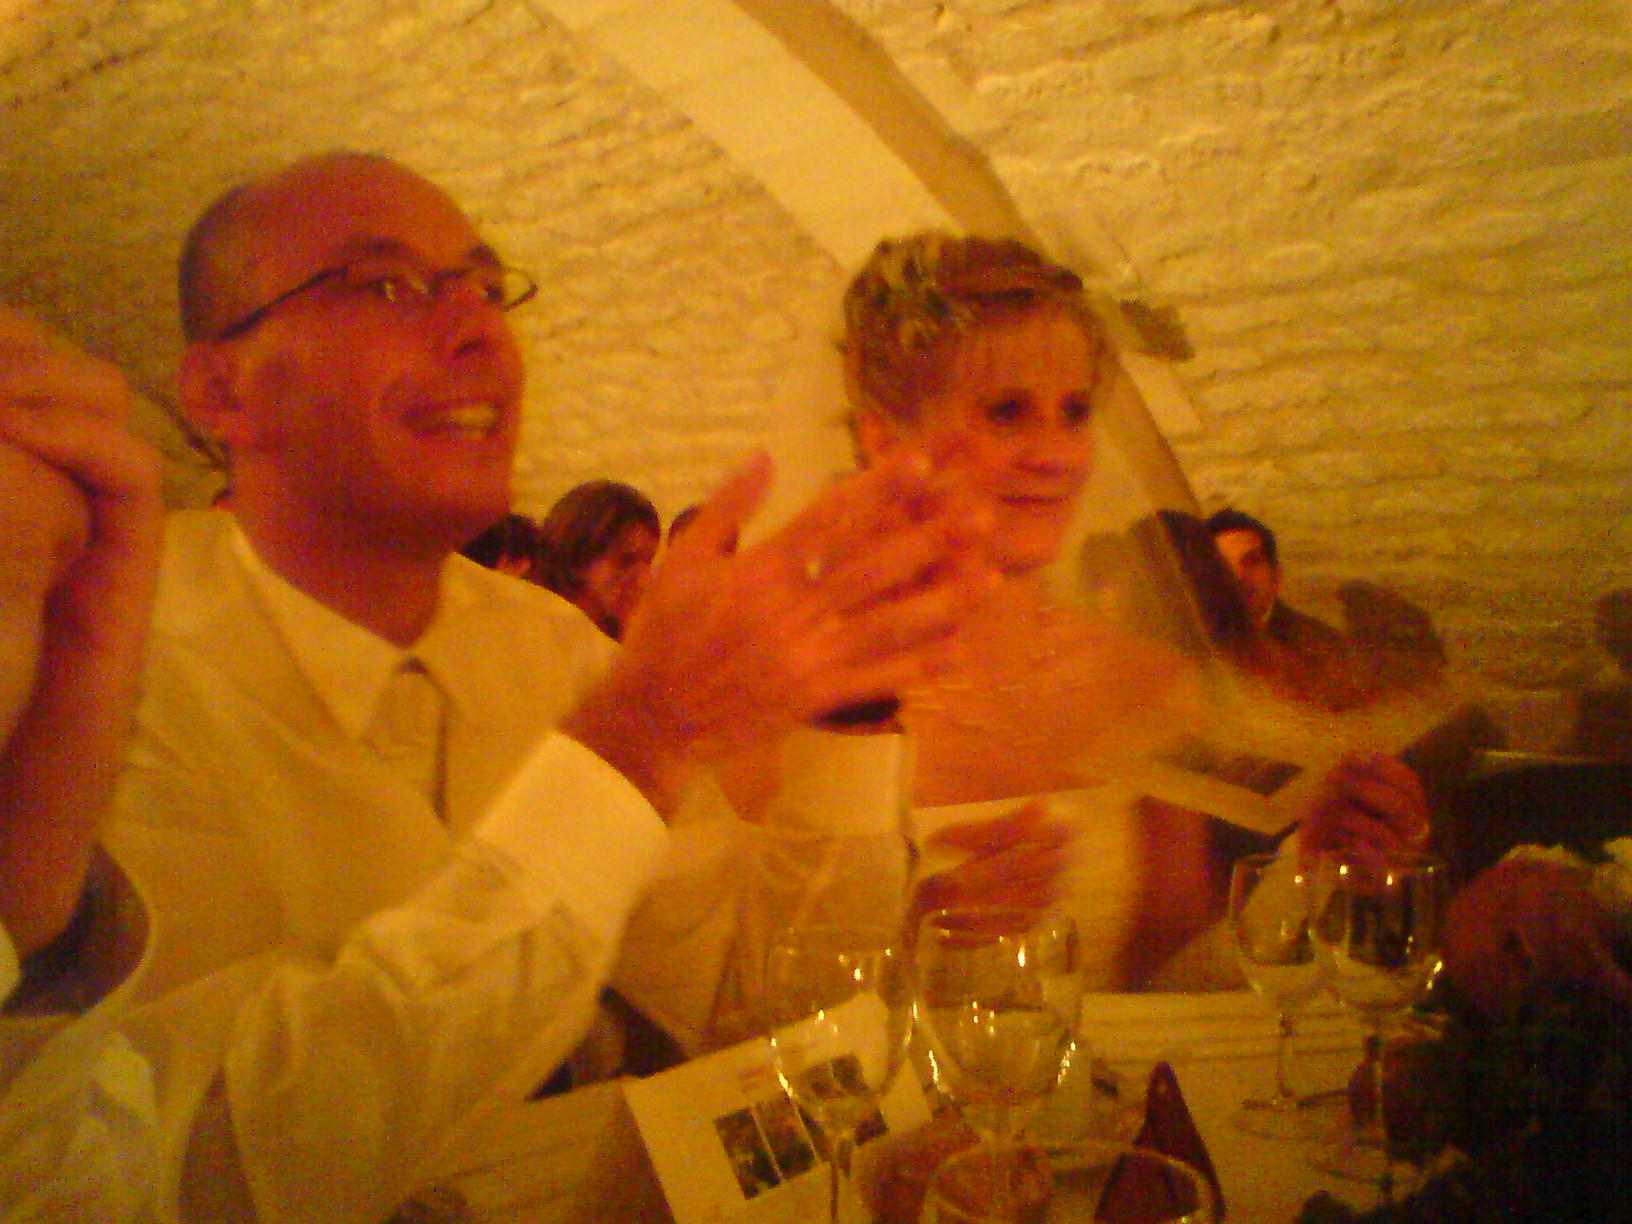 http://ddata.over-blog.com/xxxyyy/0/31/24/18/mariage-seb-et-fanny-31-05-08/DSC01306_PhotoRedukto.jpg